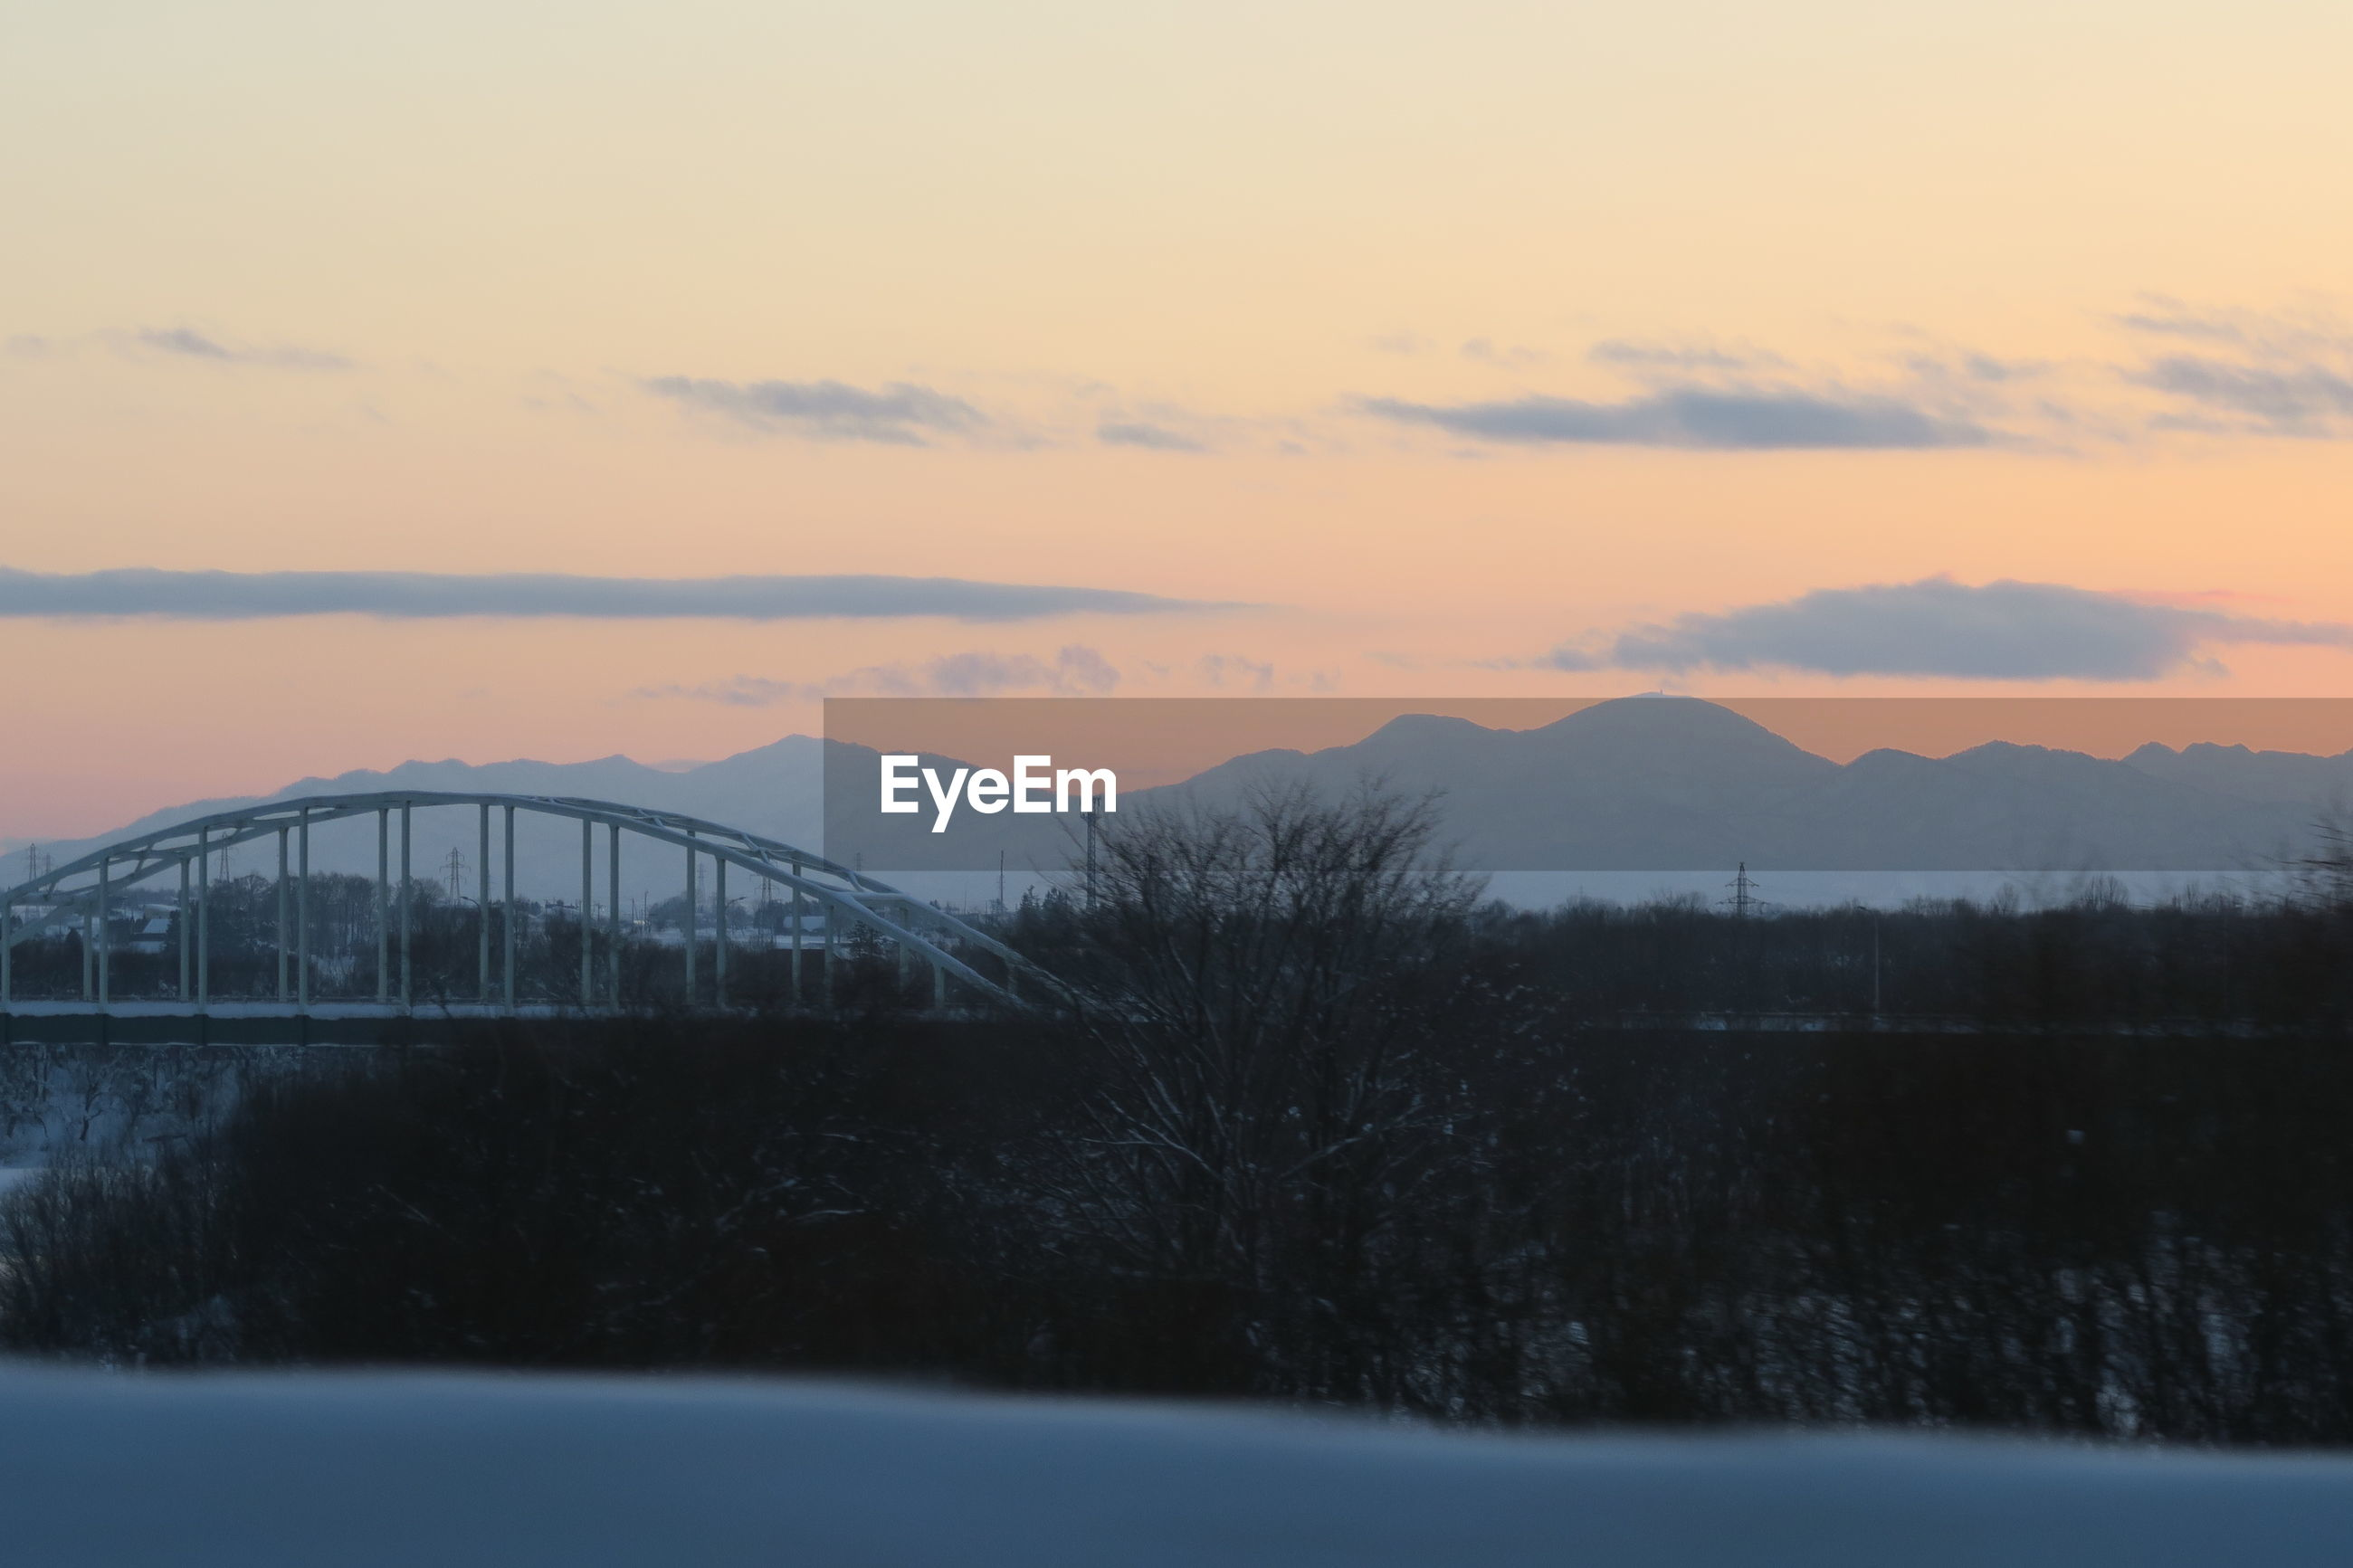 SCENIC VIEW OF SILHOUETTE BRIDGE AGAINST SKY DURING SUNSET